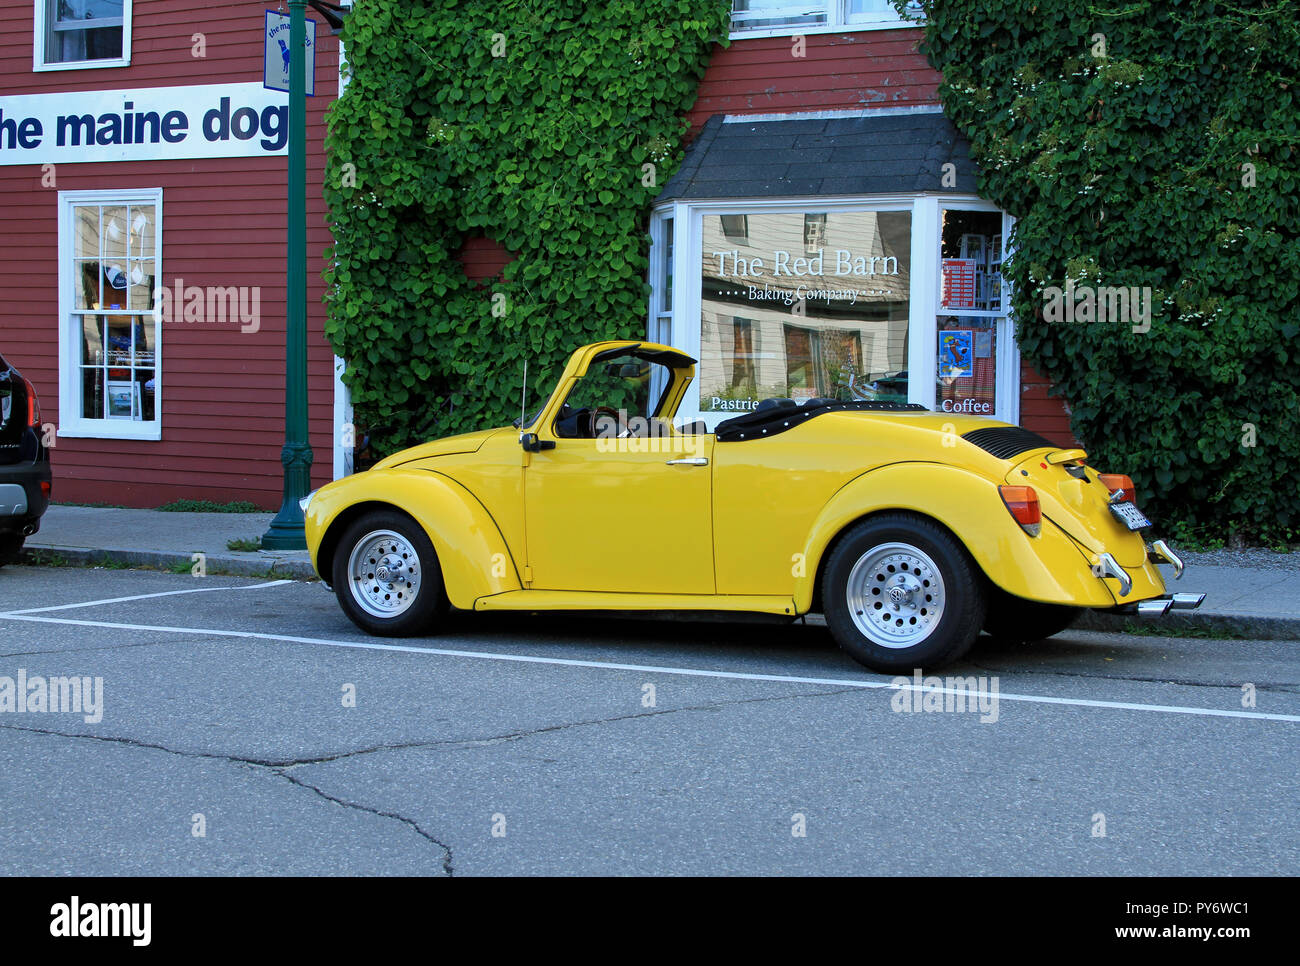 A beautifully restored yellow convertible Volkswagen beetle parked on a side street in Camden, Maine, in front of some shops Stock Photo